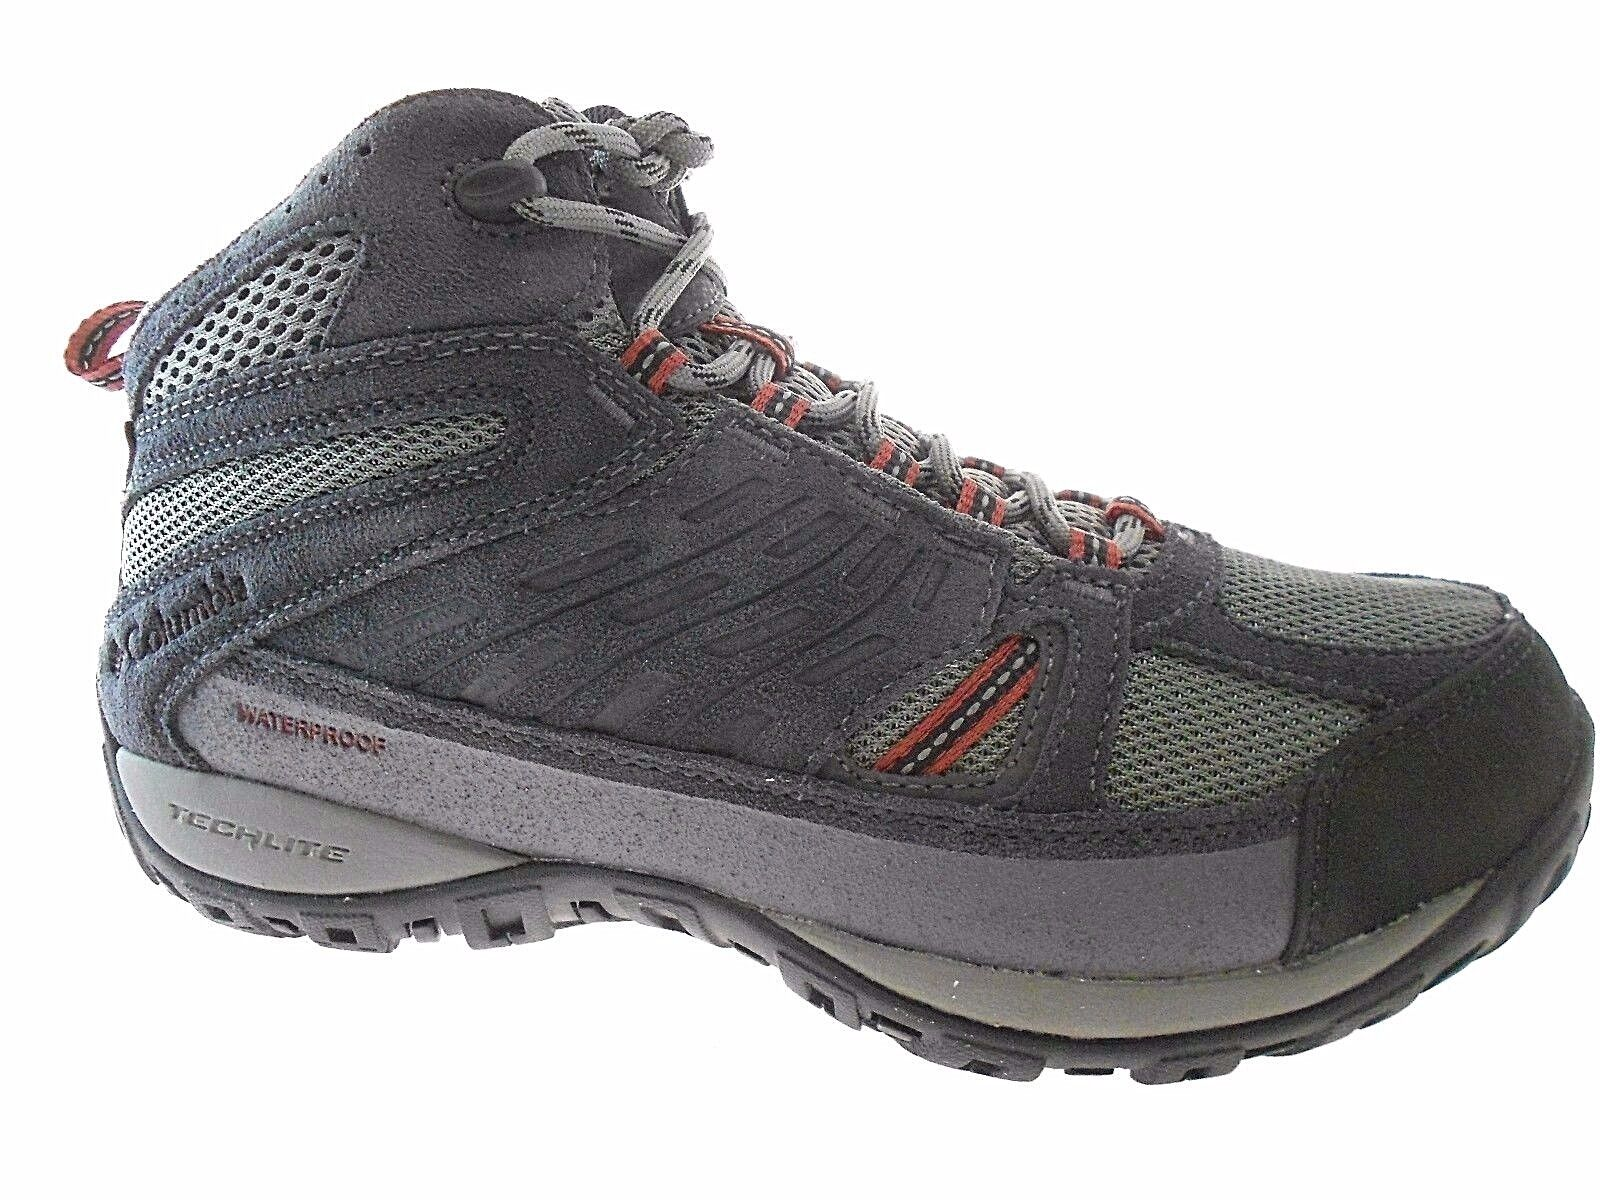 COLUMBIA ACCESS POINT MID MEN'S CHARCOAL WATERPROOF HIKING BOOTS  YI5296-030